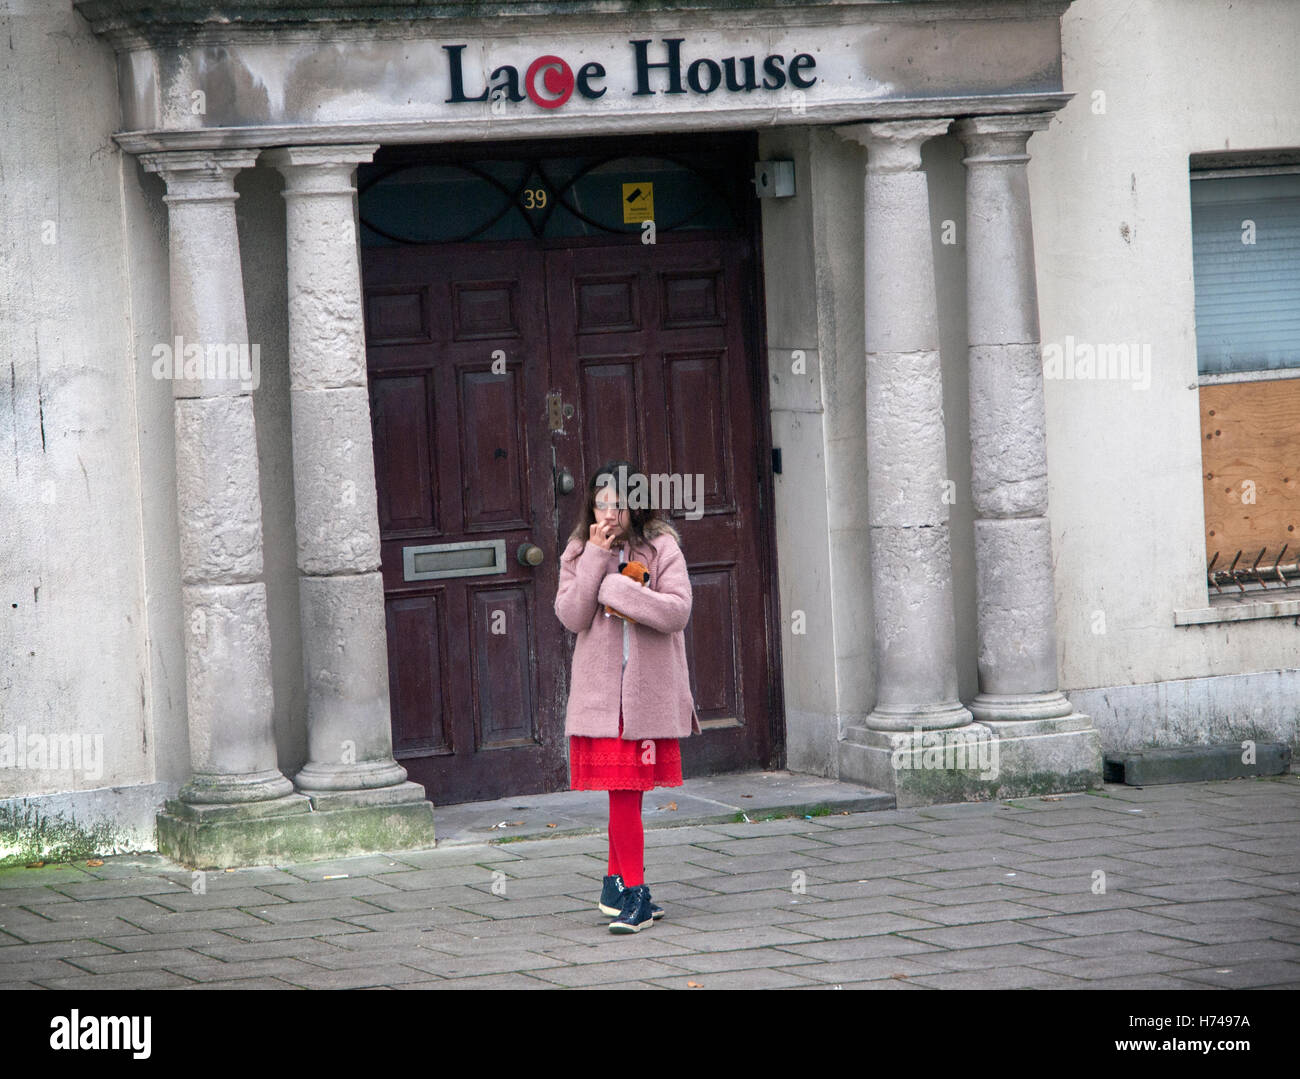 A girl in red tights stands outside Lace House in Brighton - Stock Image